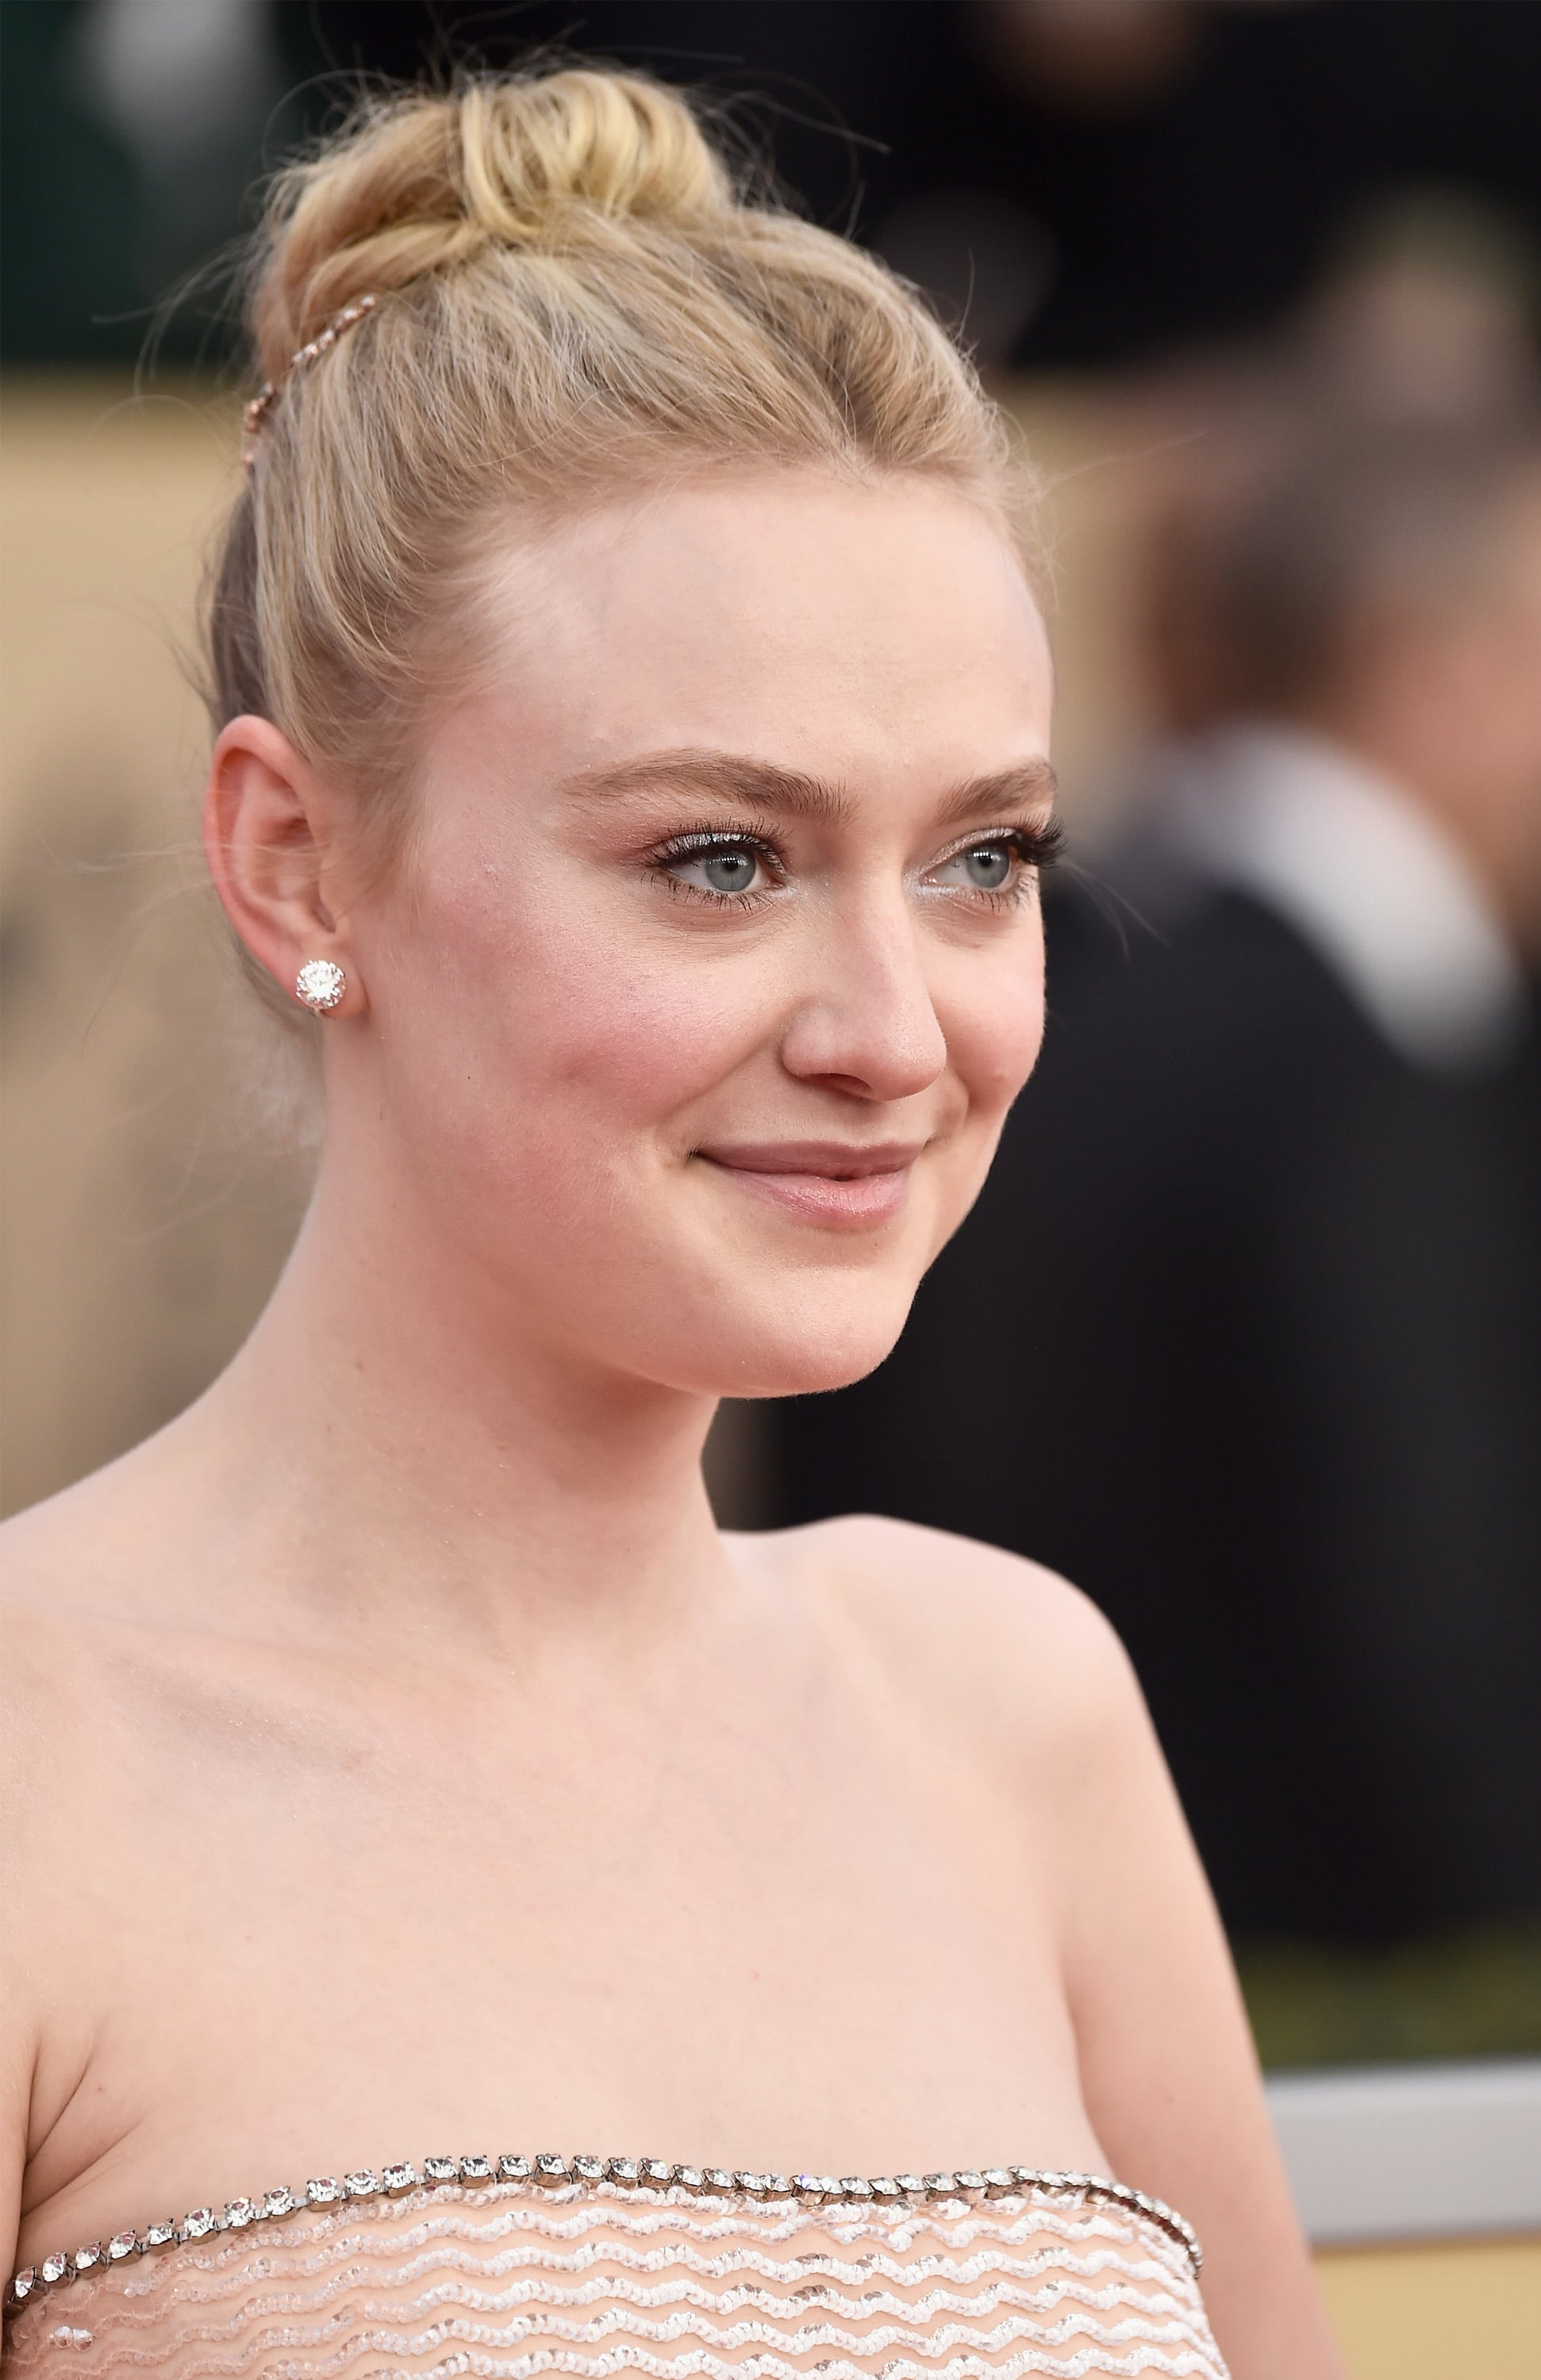 Hacked Dakota Fanning nude (32 photo), Tits, Sideboobs, Selfie, cameltoe 2017